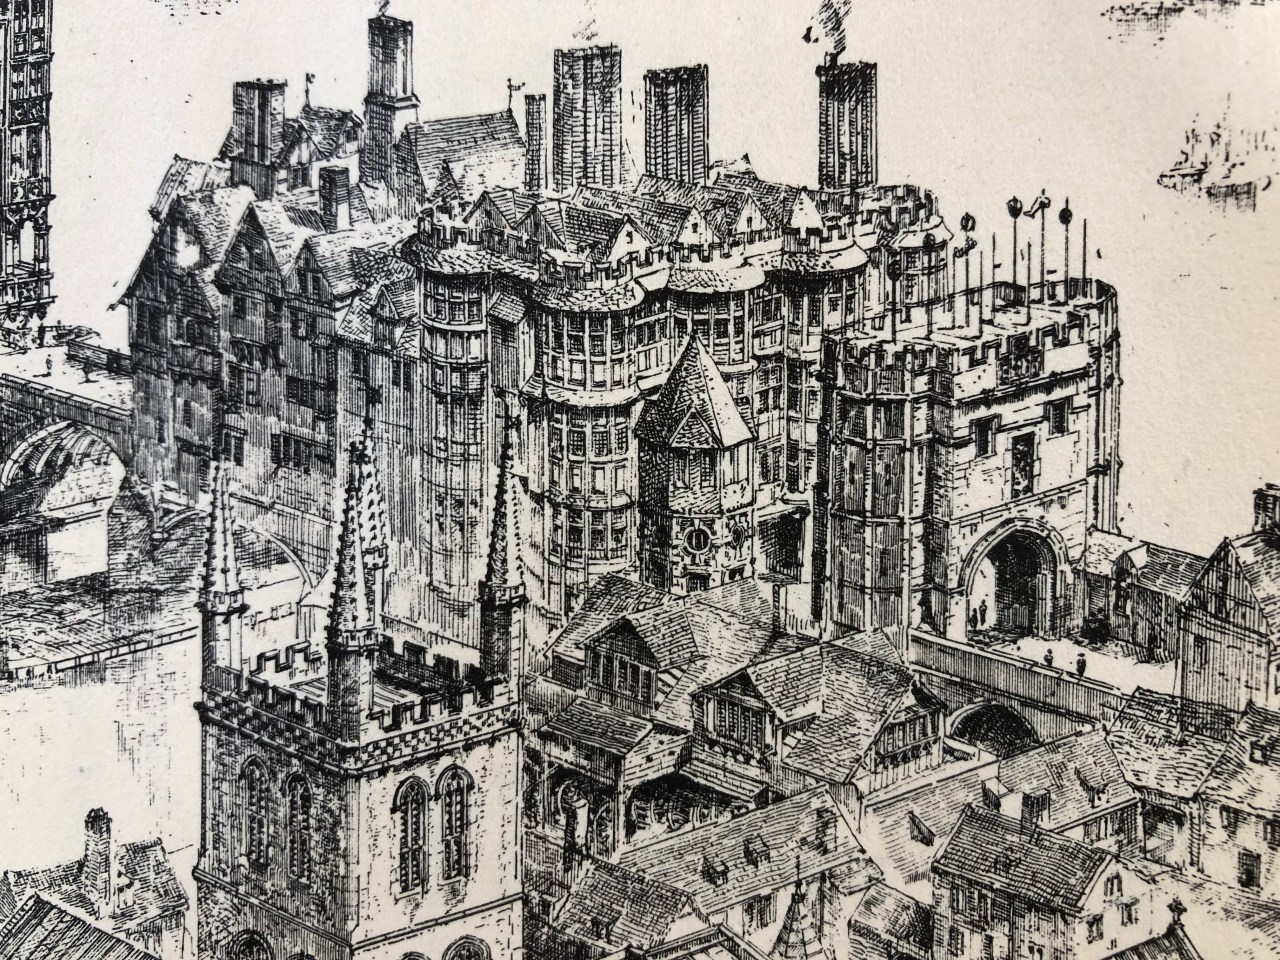 A close up of the buildings on Old London Bridge